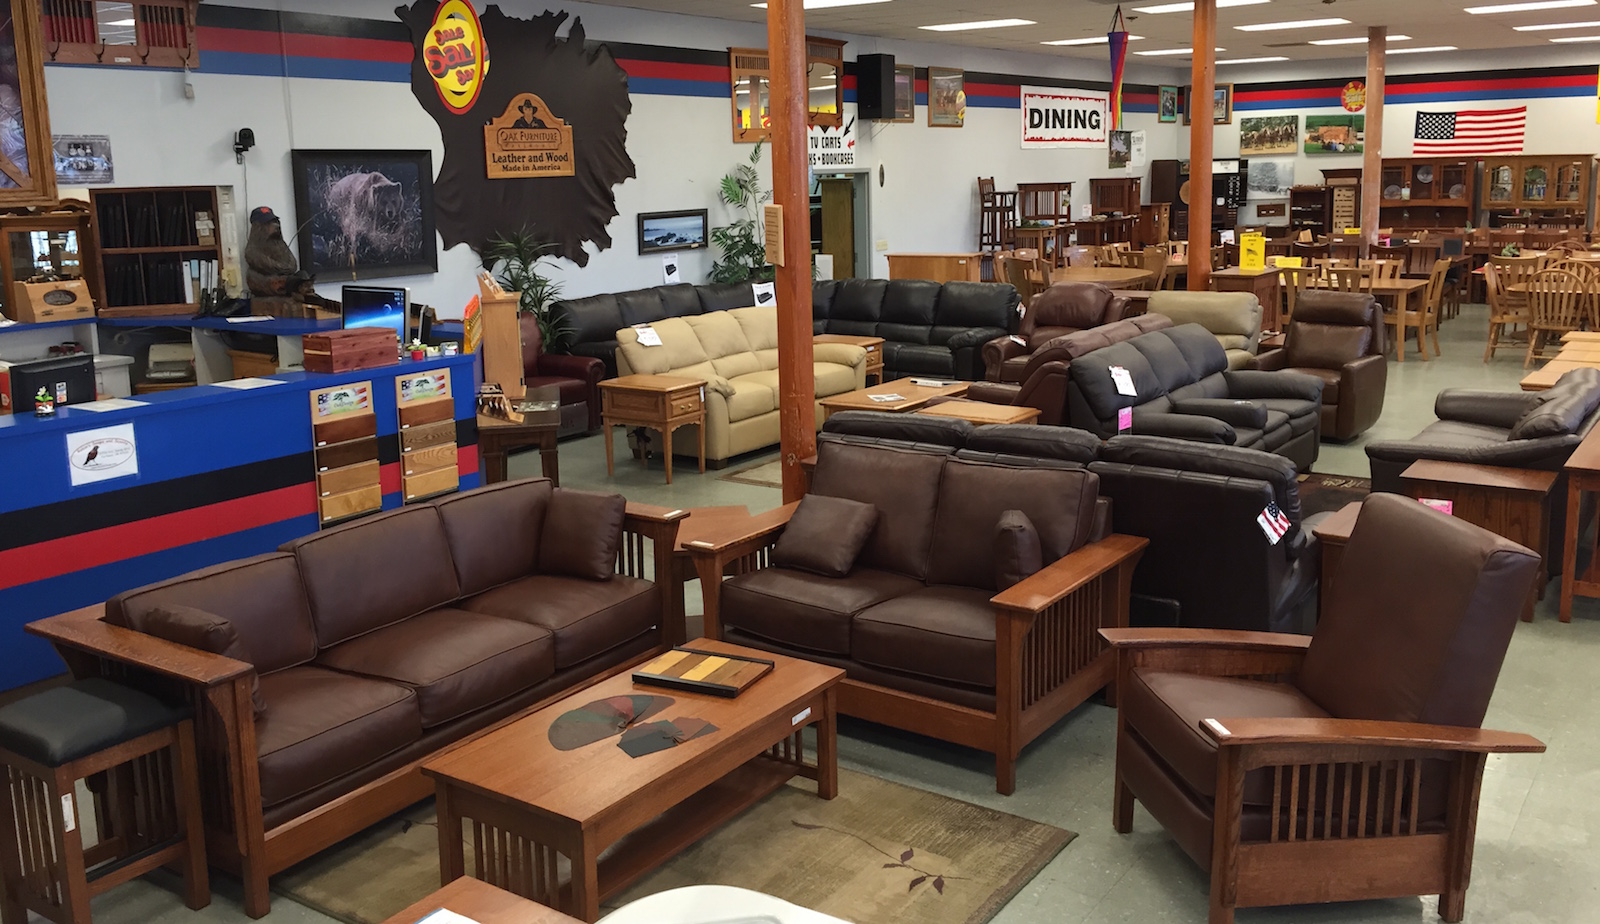 Import furniture from china to the us icontainers for All american furniture warehouse